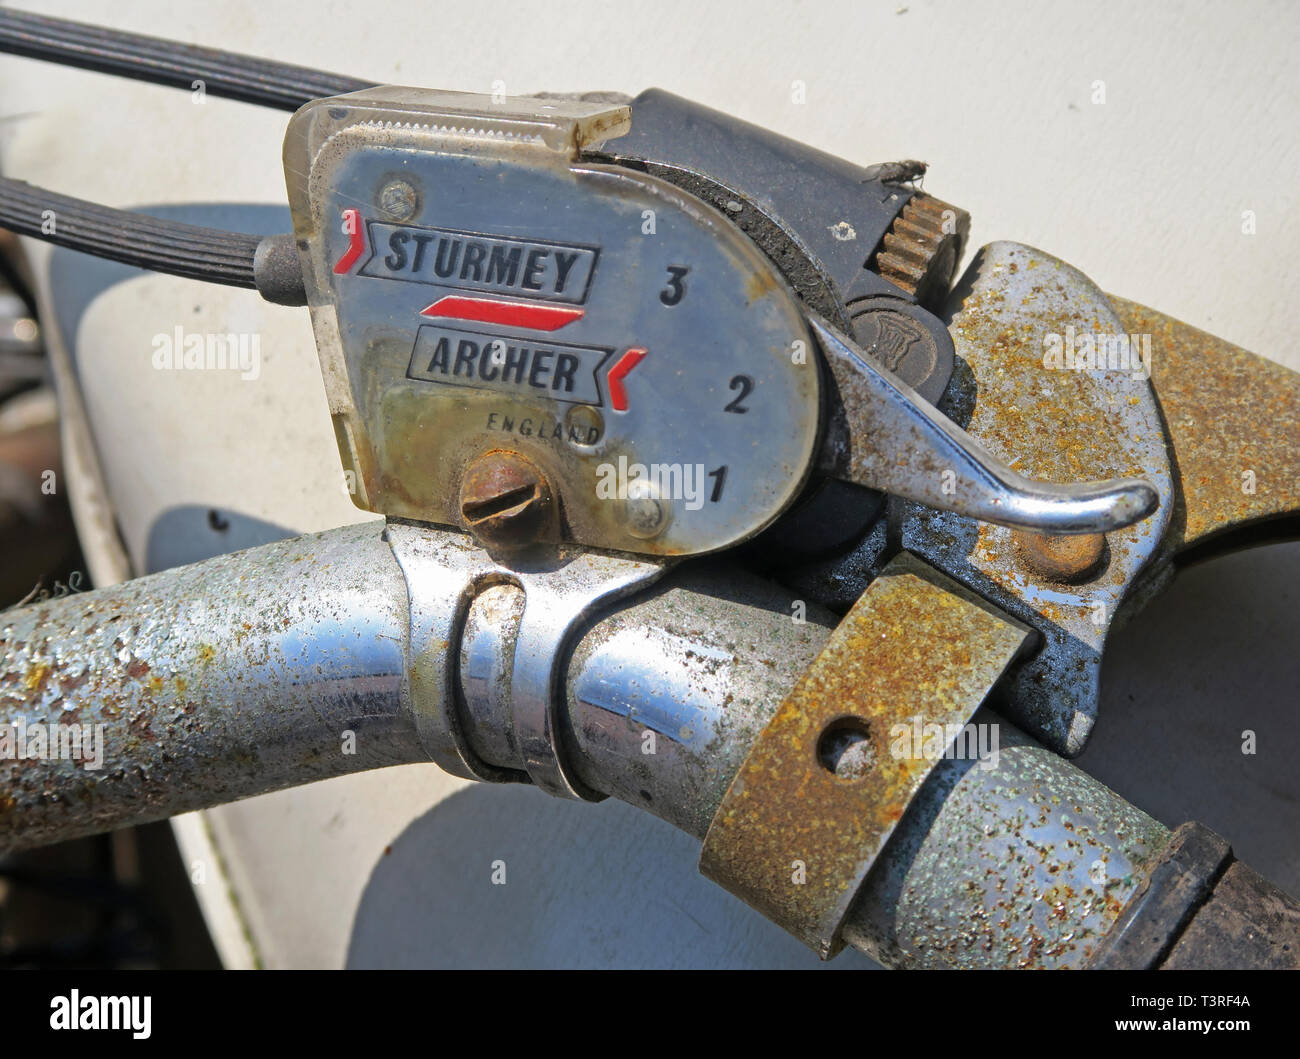 Rusting 1970s Sturmey Archer three speed gear changer on a bicycle, in England - Stock Image